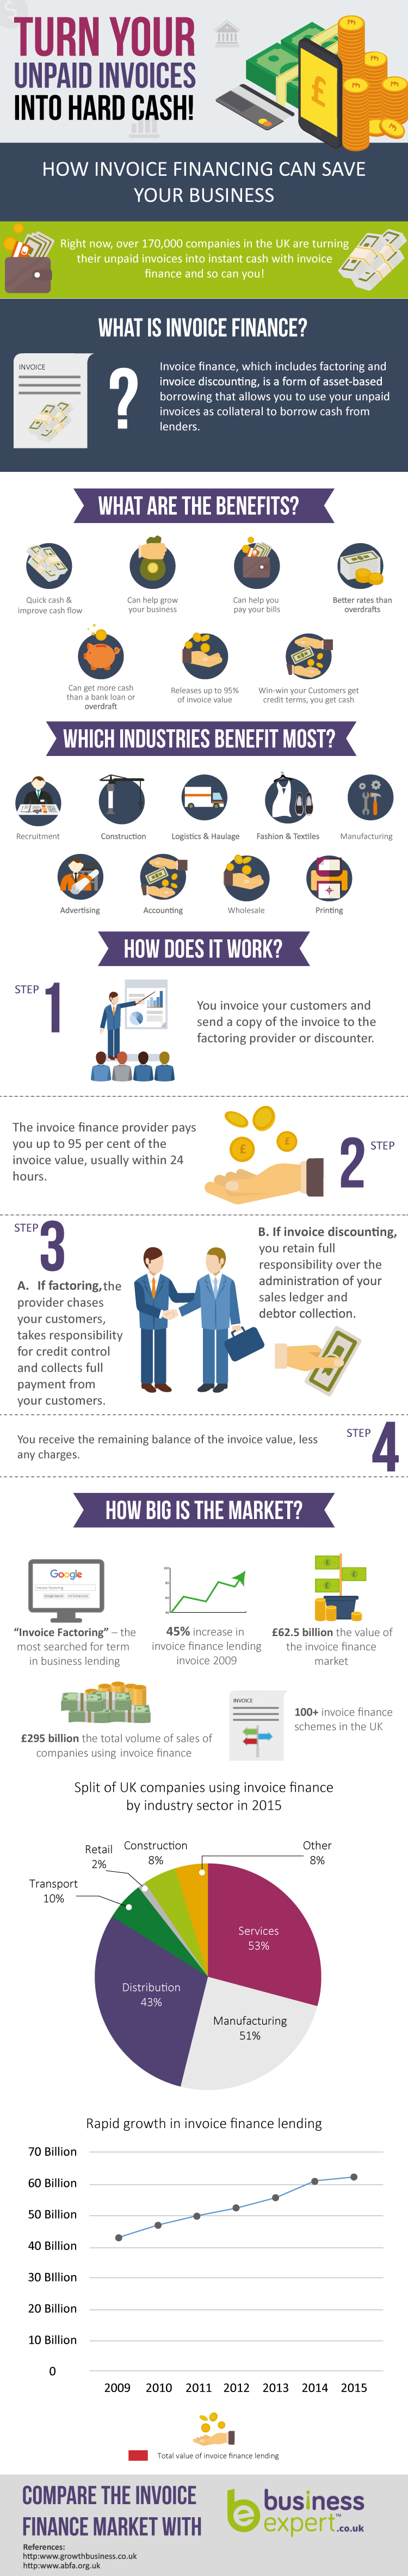 Infographic : How Invoice Financing Can Save Your Business